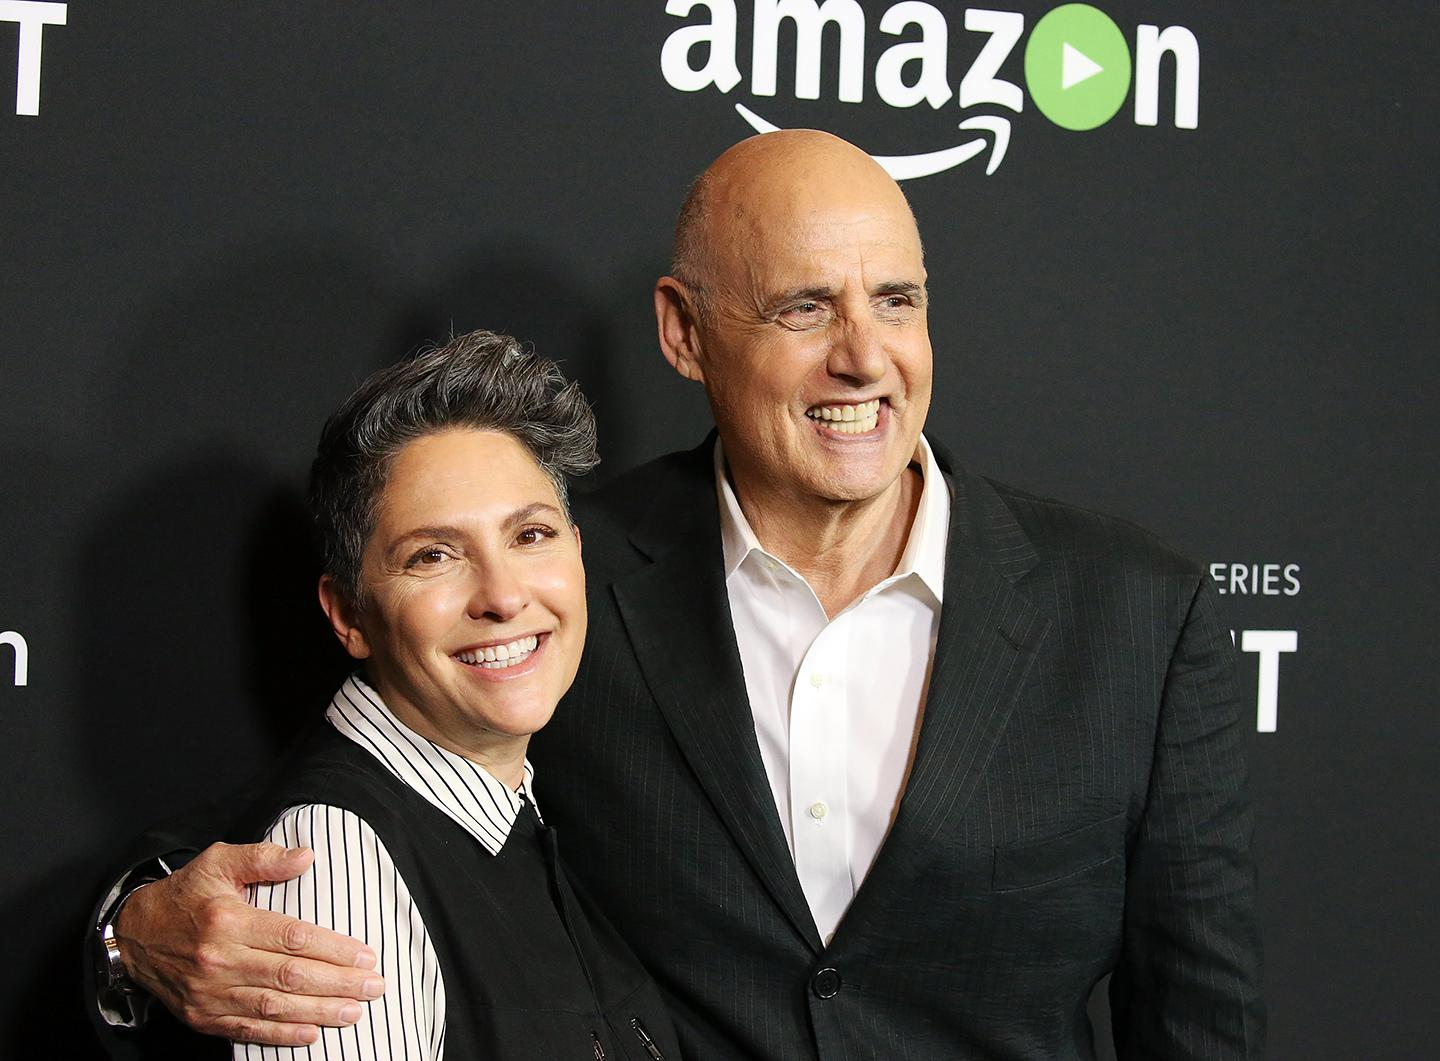 Jill Soloway with Jeffrey Tambor, the star of 'Transparent,' who was fired after allegations of harassment.